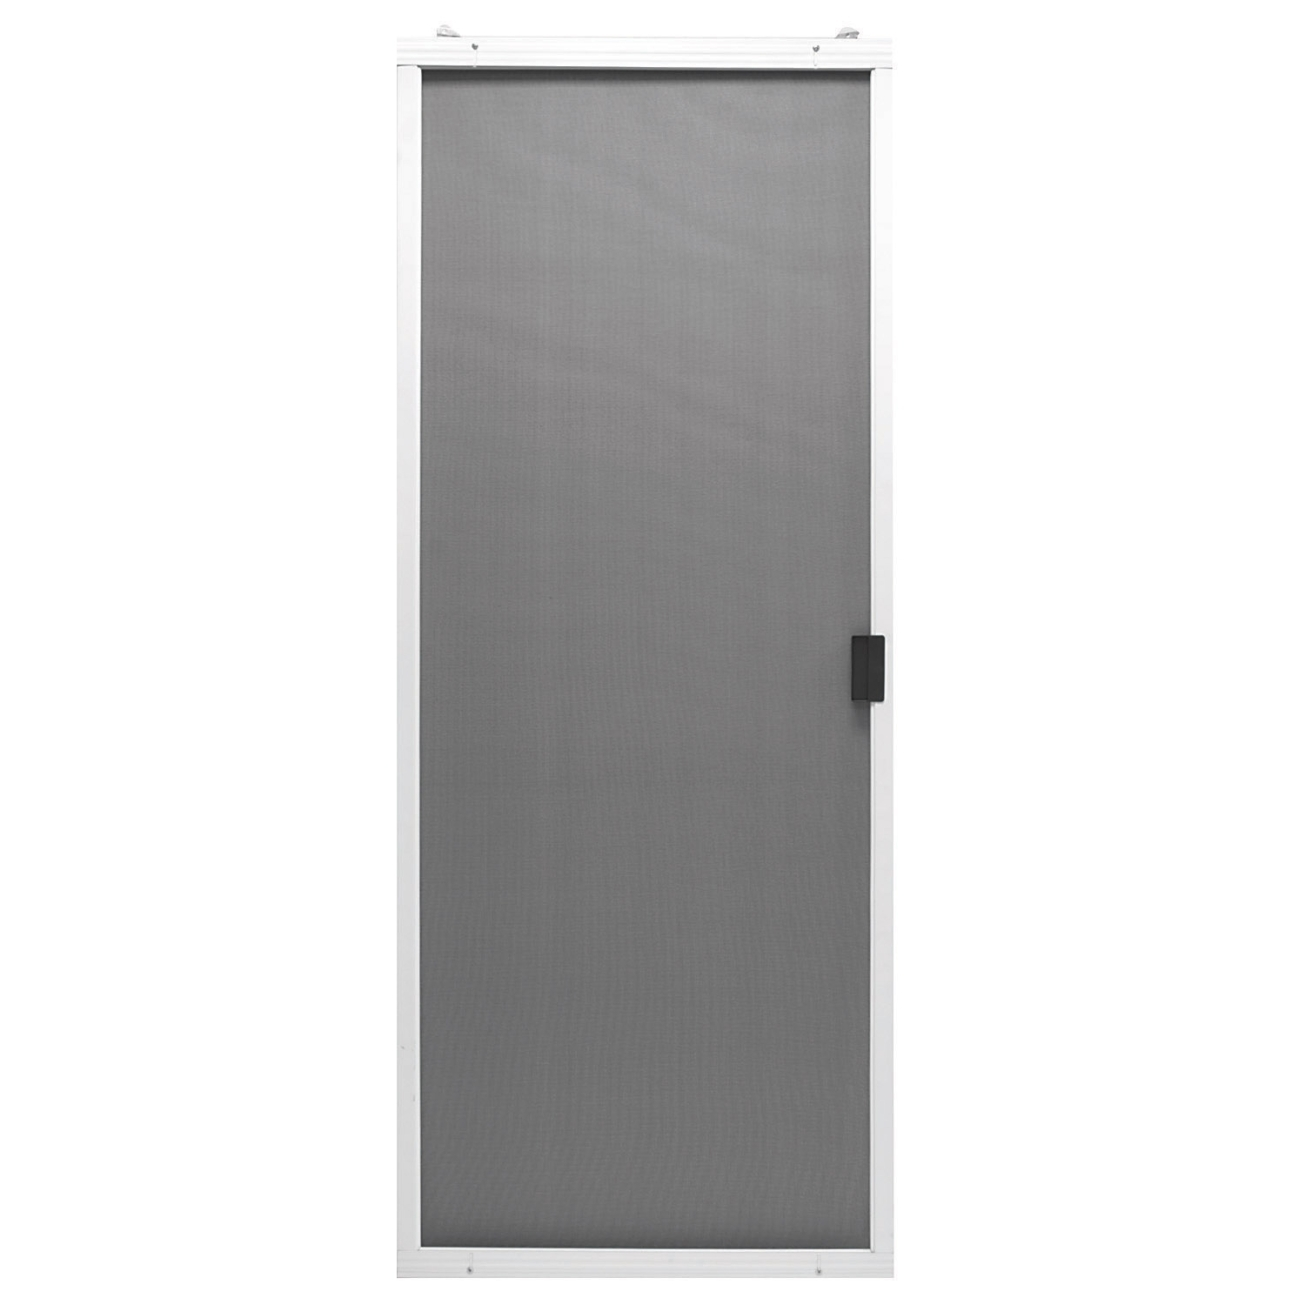 Permalink to Ace Hardware Sliding Closet Doors